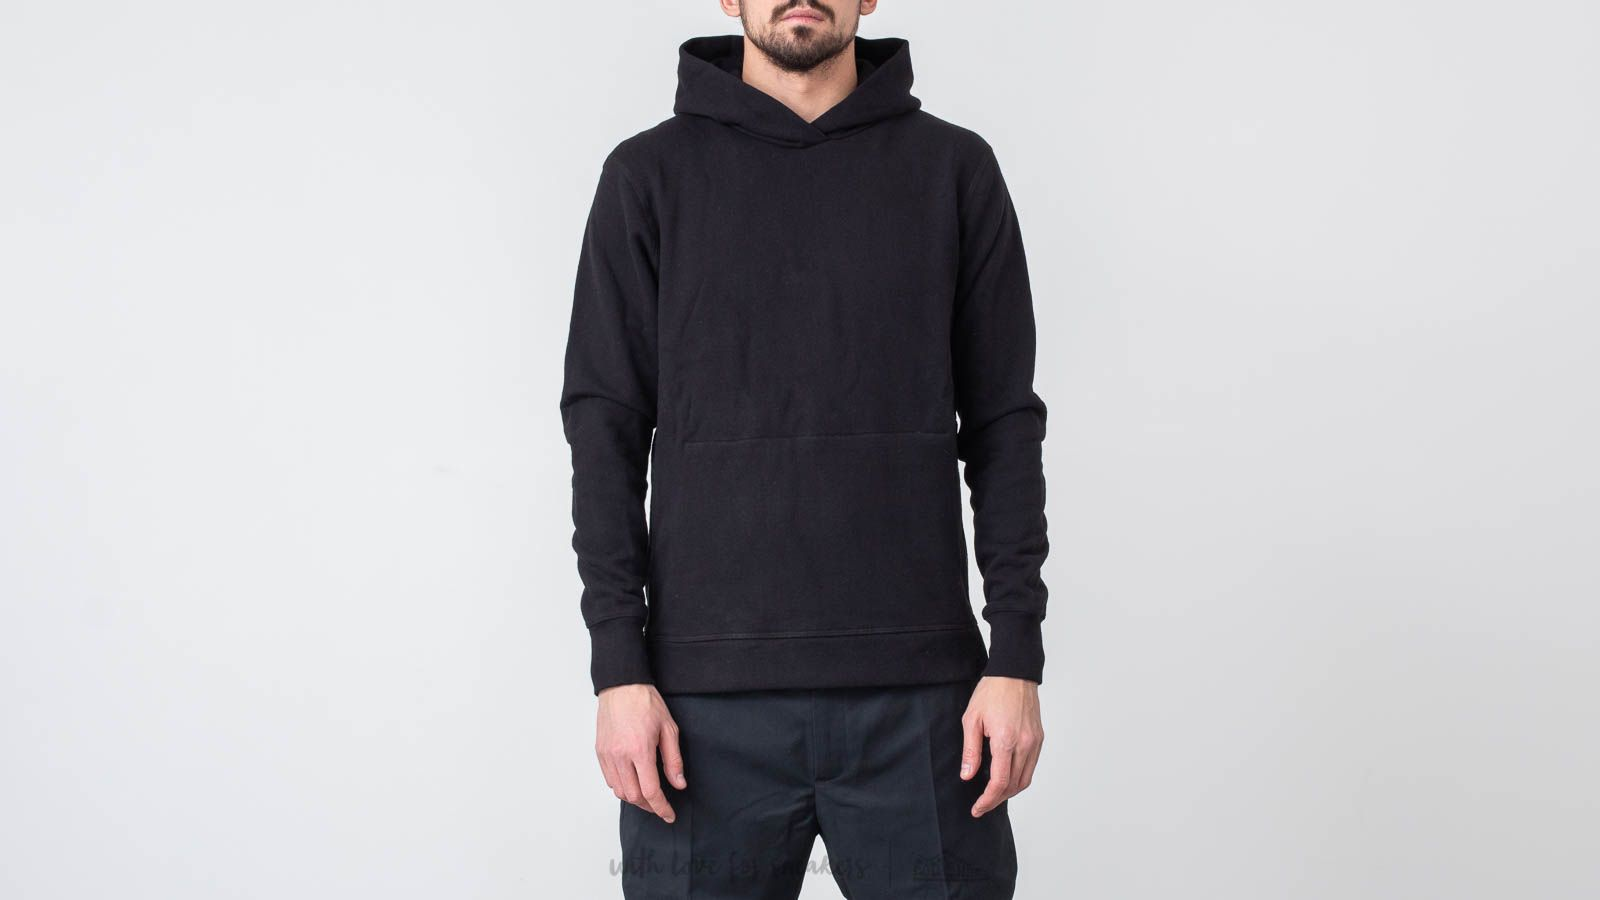 Sweatshirts John Elliott Hooded Villain Hoodie Black